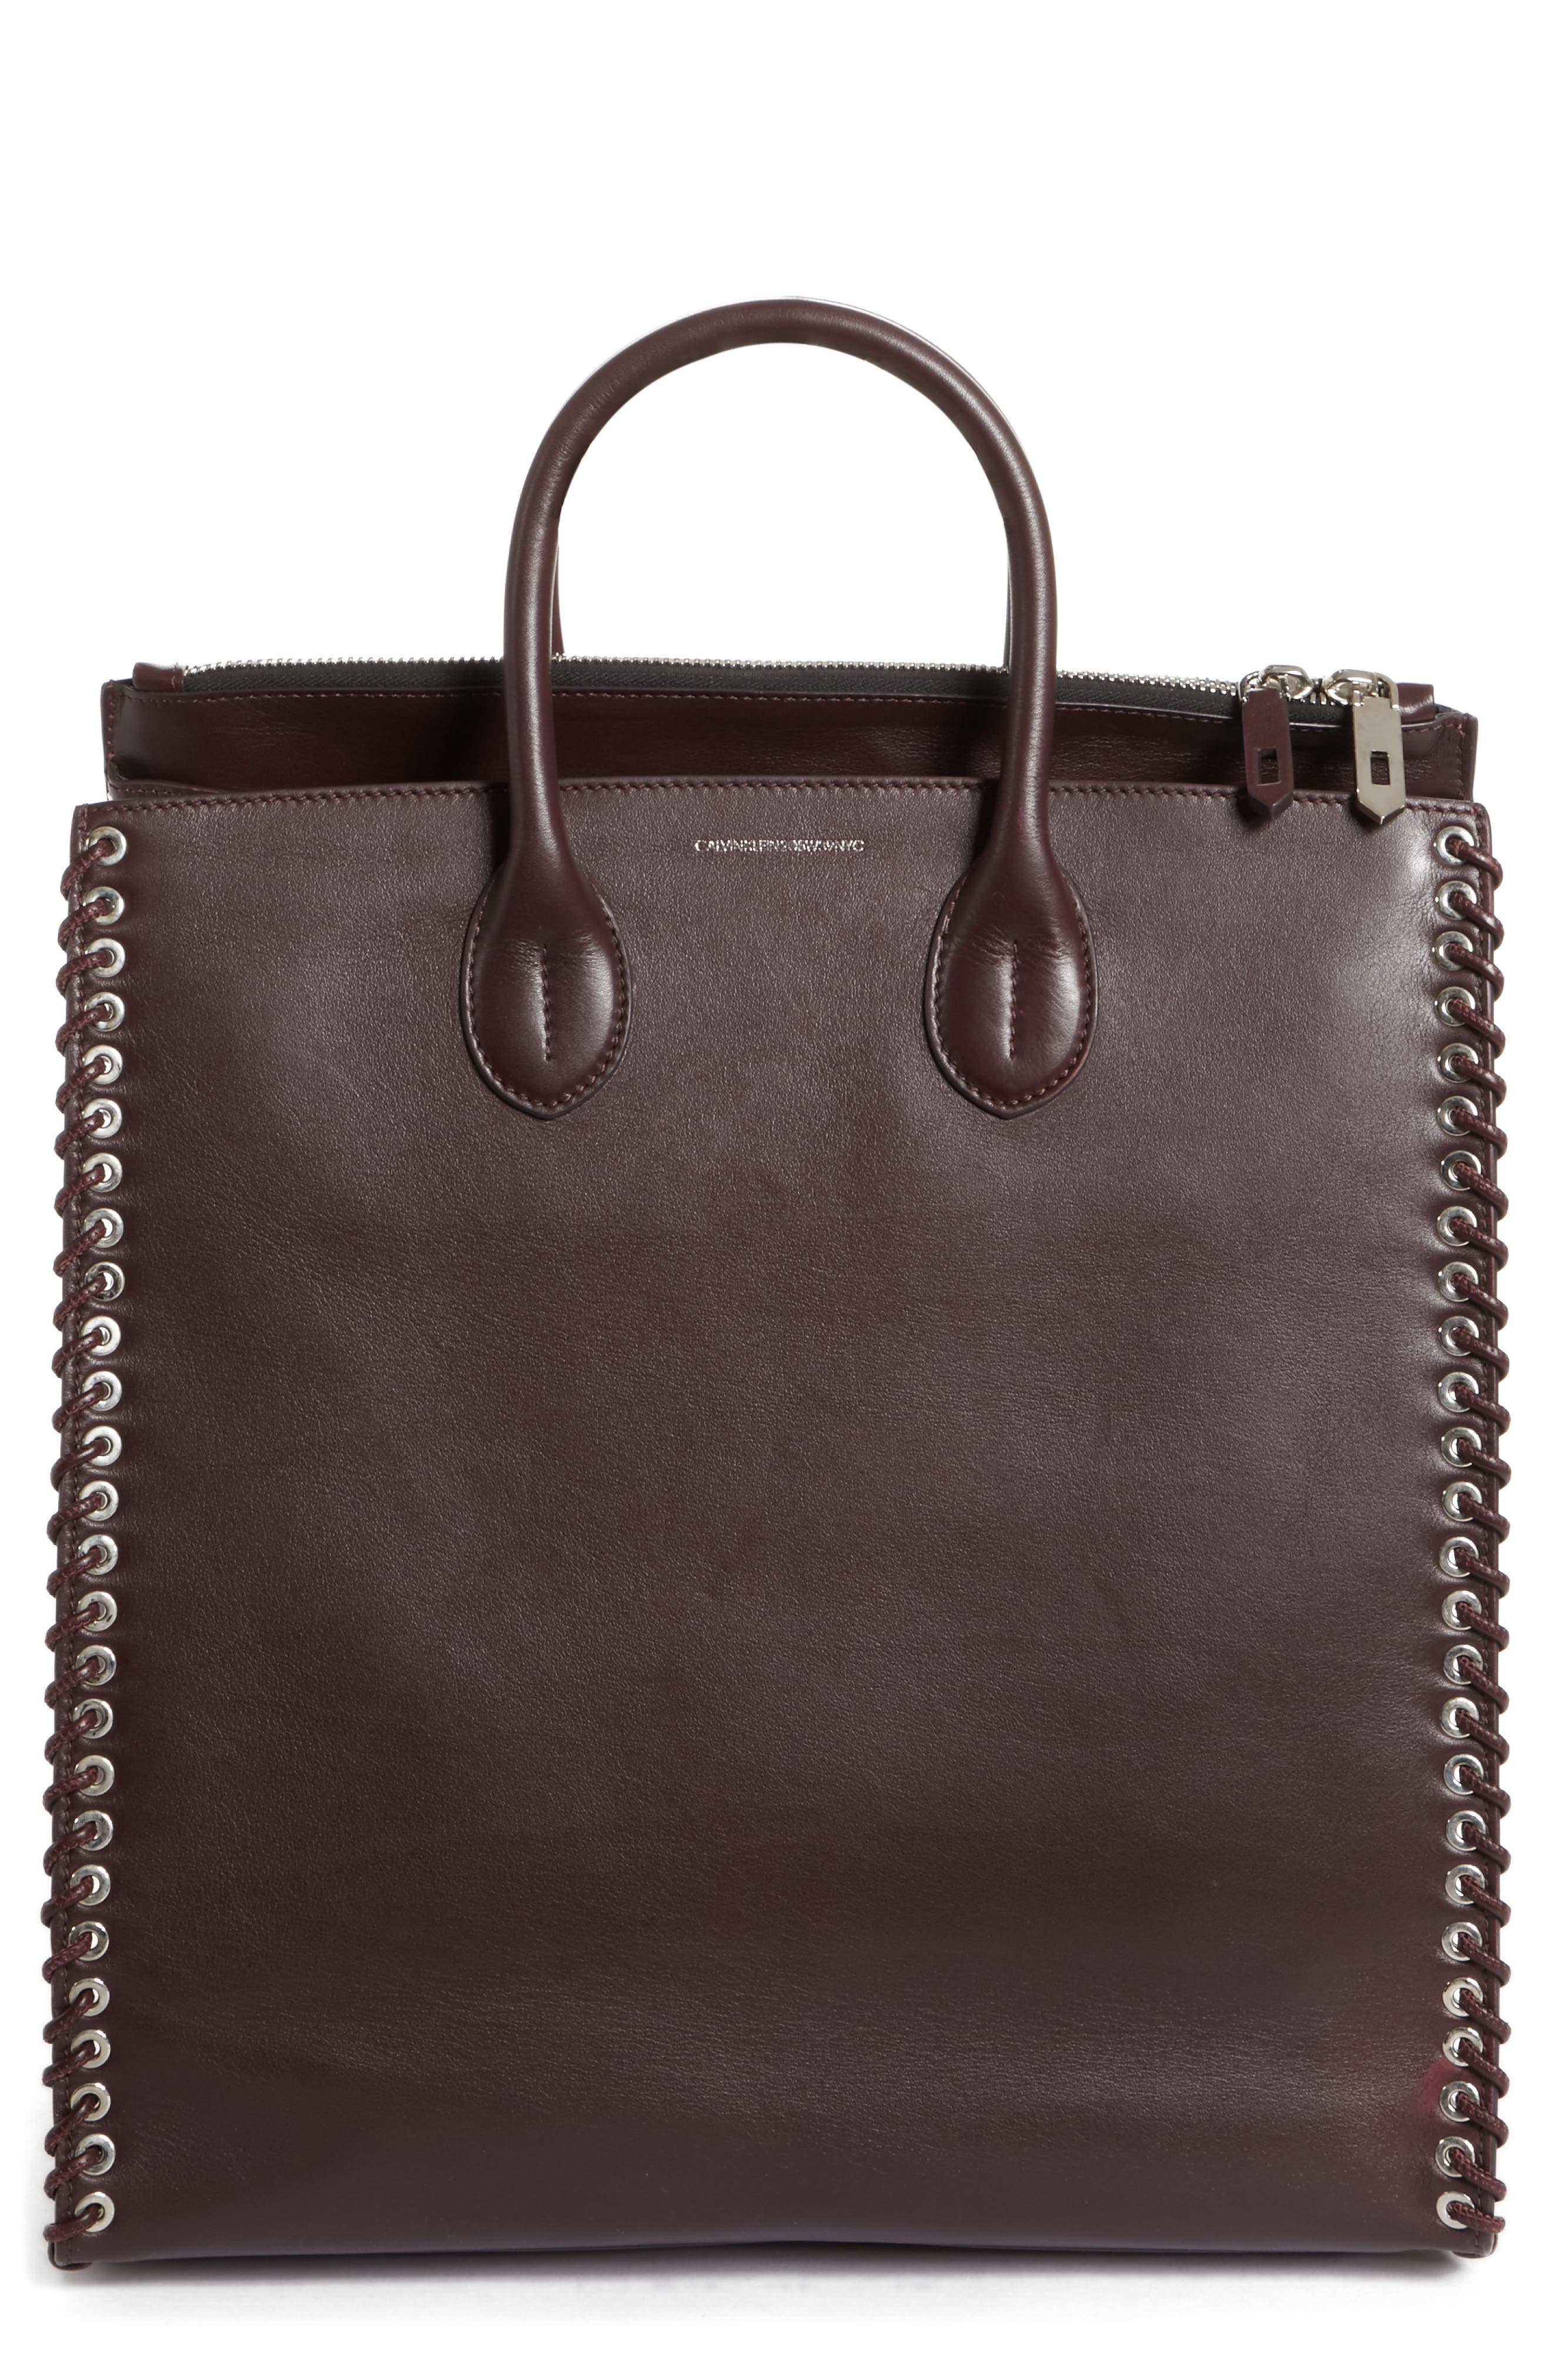 Alternate Image 1 Selected - CALVIN KLEIN 205W39NYC Whipstitch Calfskin Tote